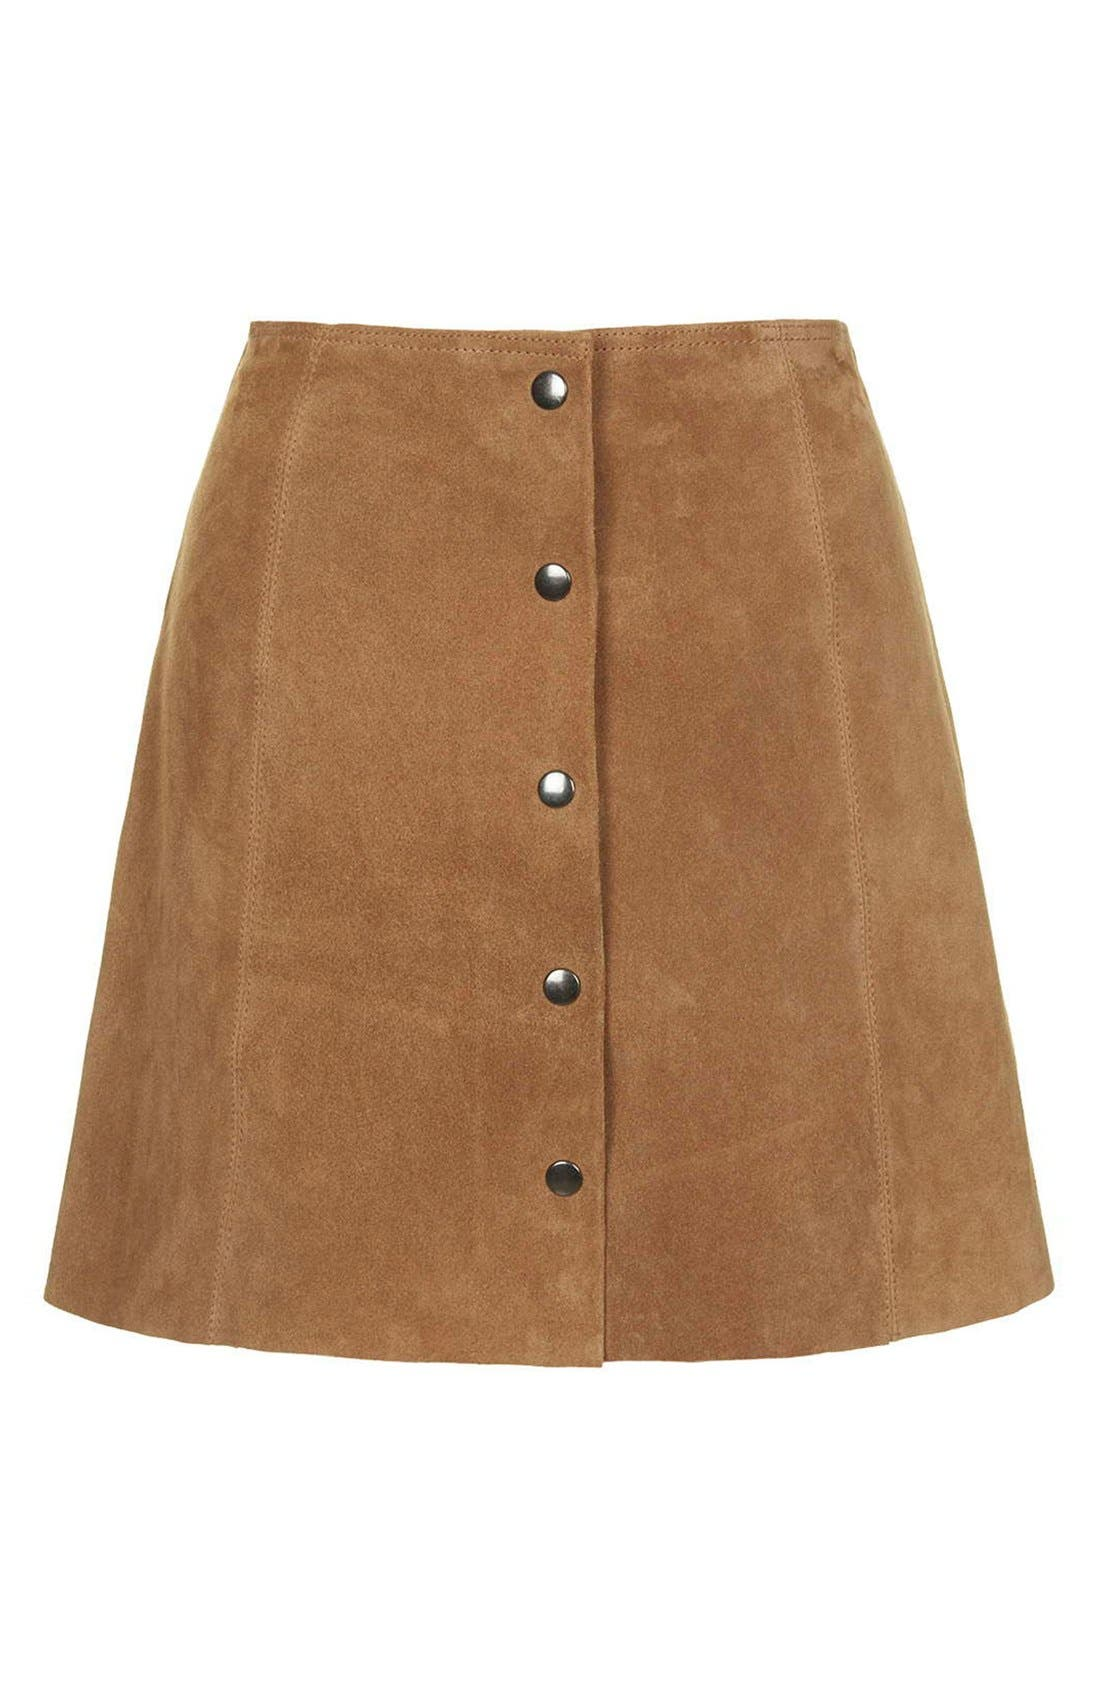 Alternate Image 3  - Topshop Suede A-Line Skirt